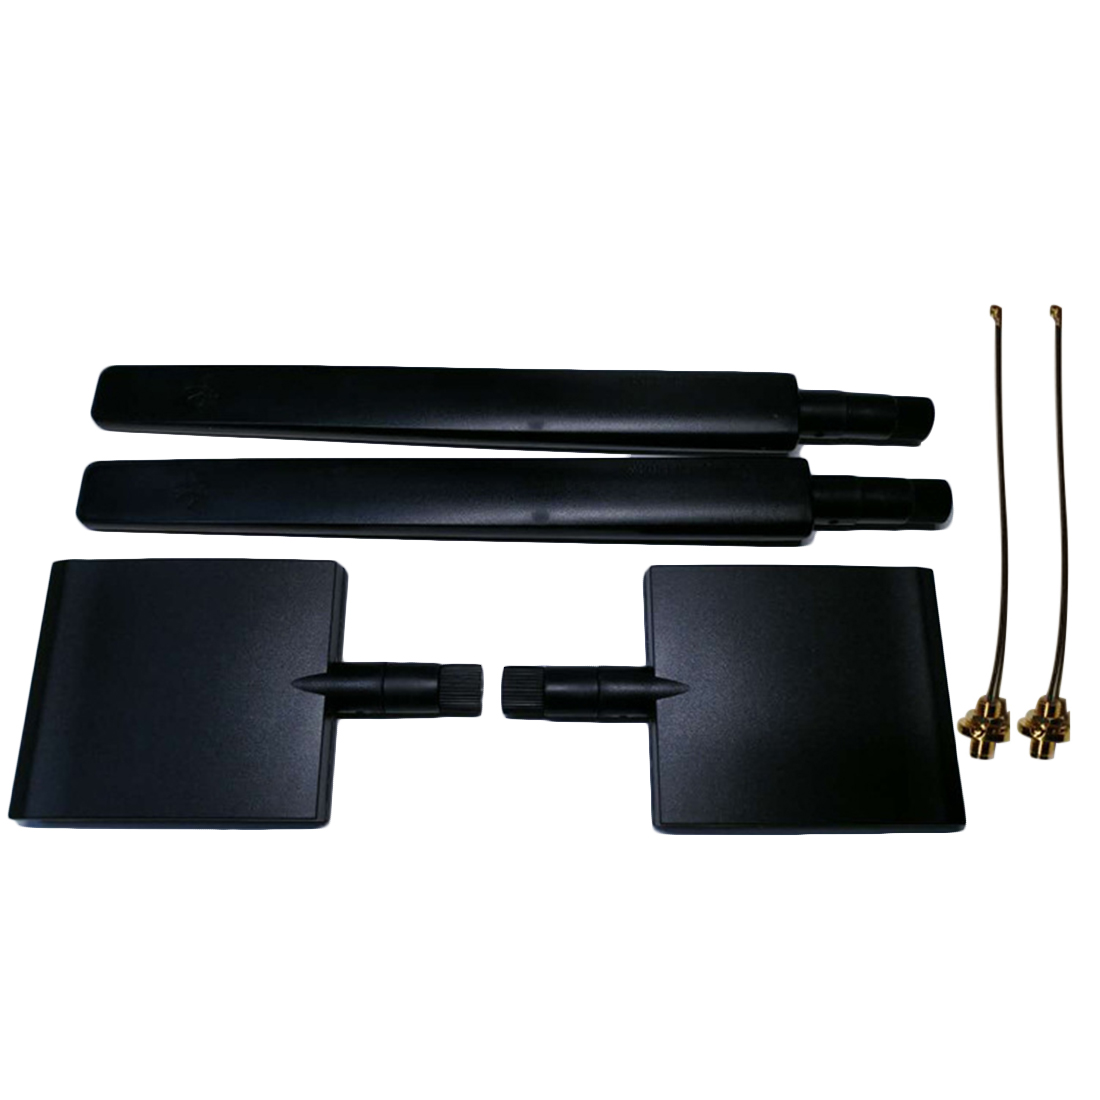 цена на Argtek HX-OS71 Omni-directional Orientation Antenna Kit Extended Range Gain Antenna for DJI Mavic Pro/Air/Spark